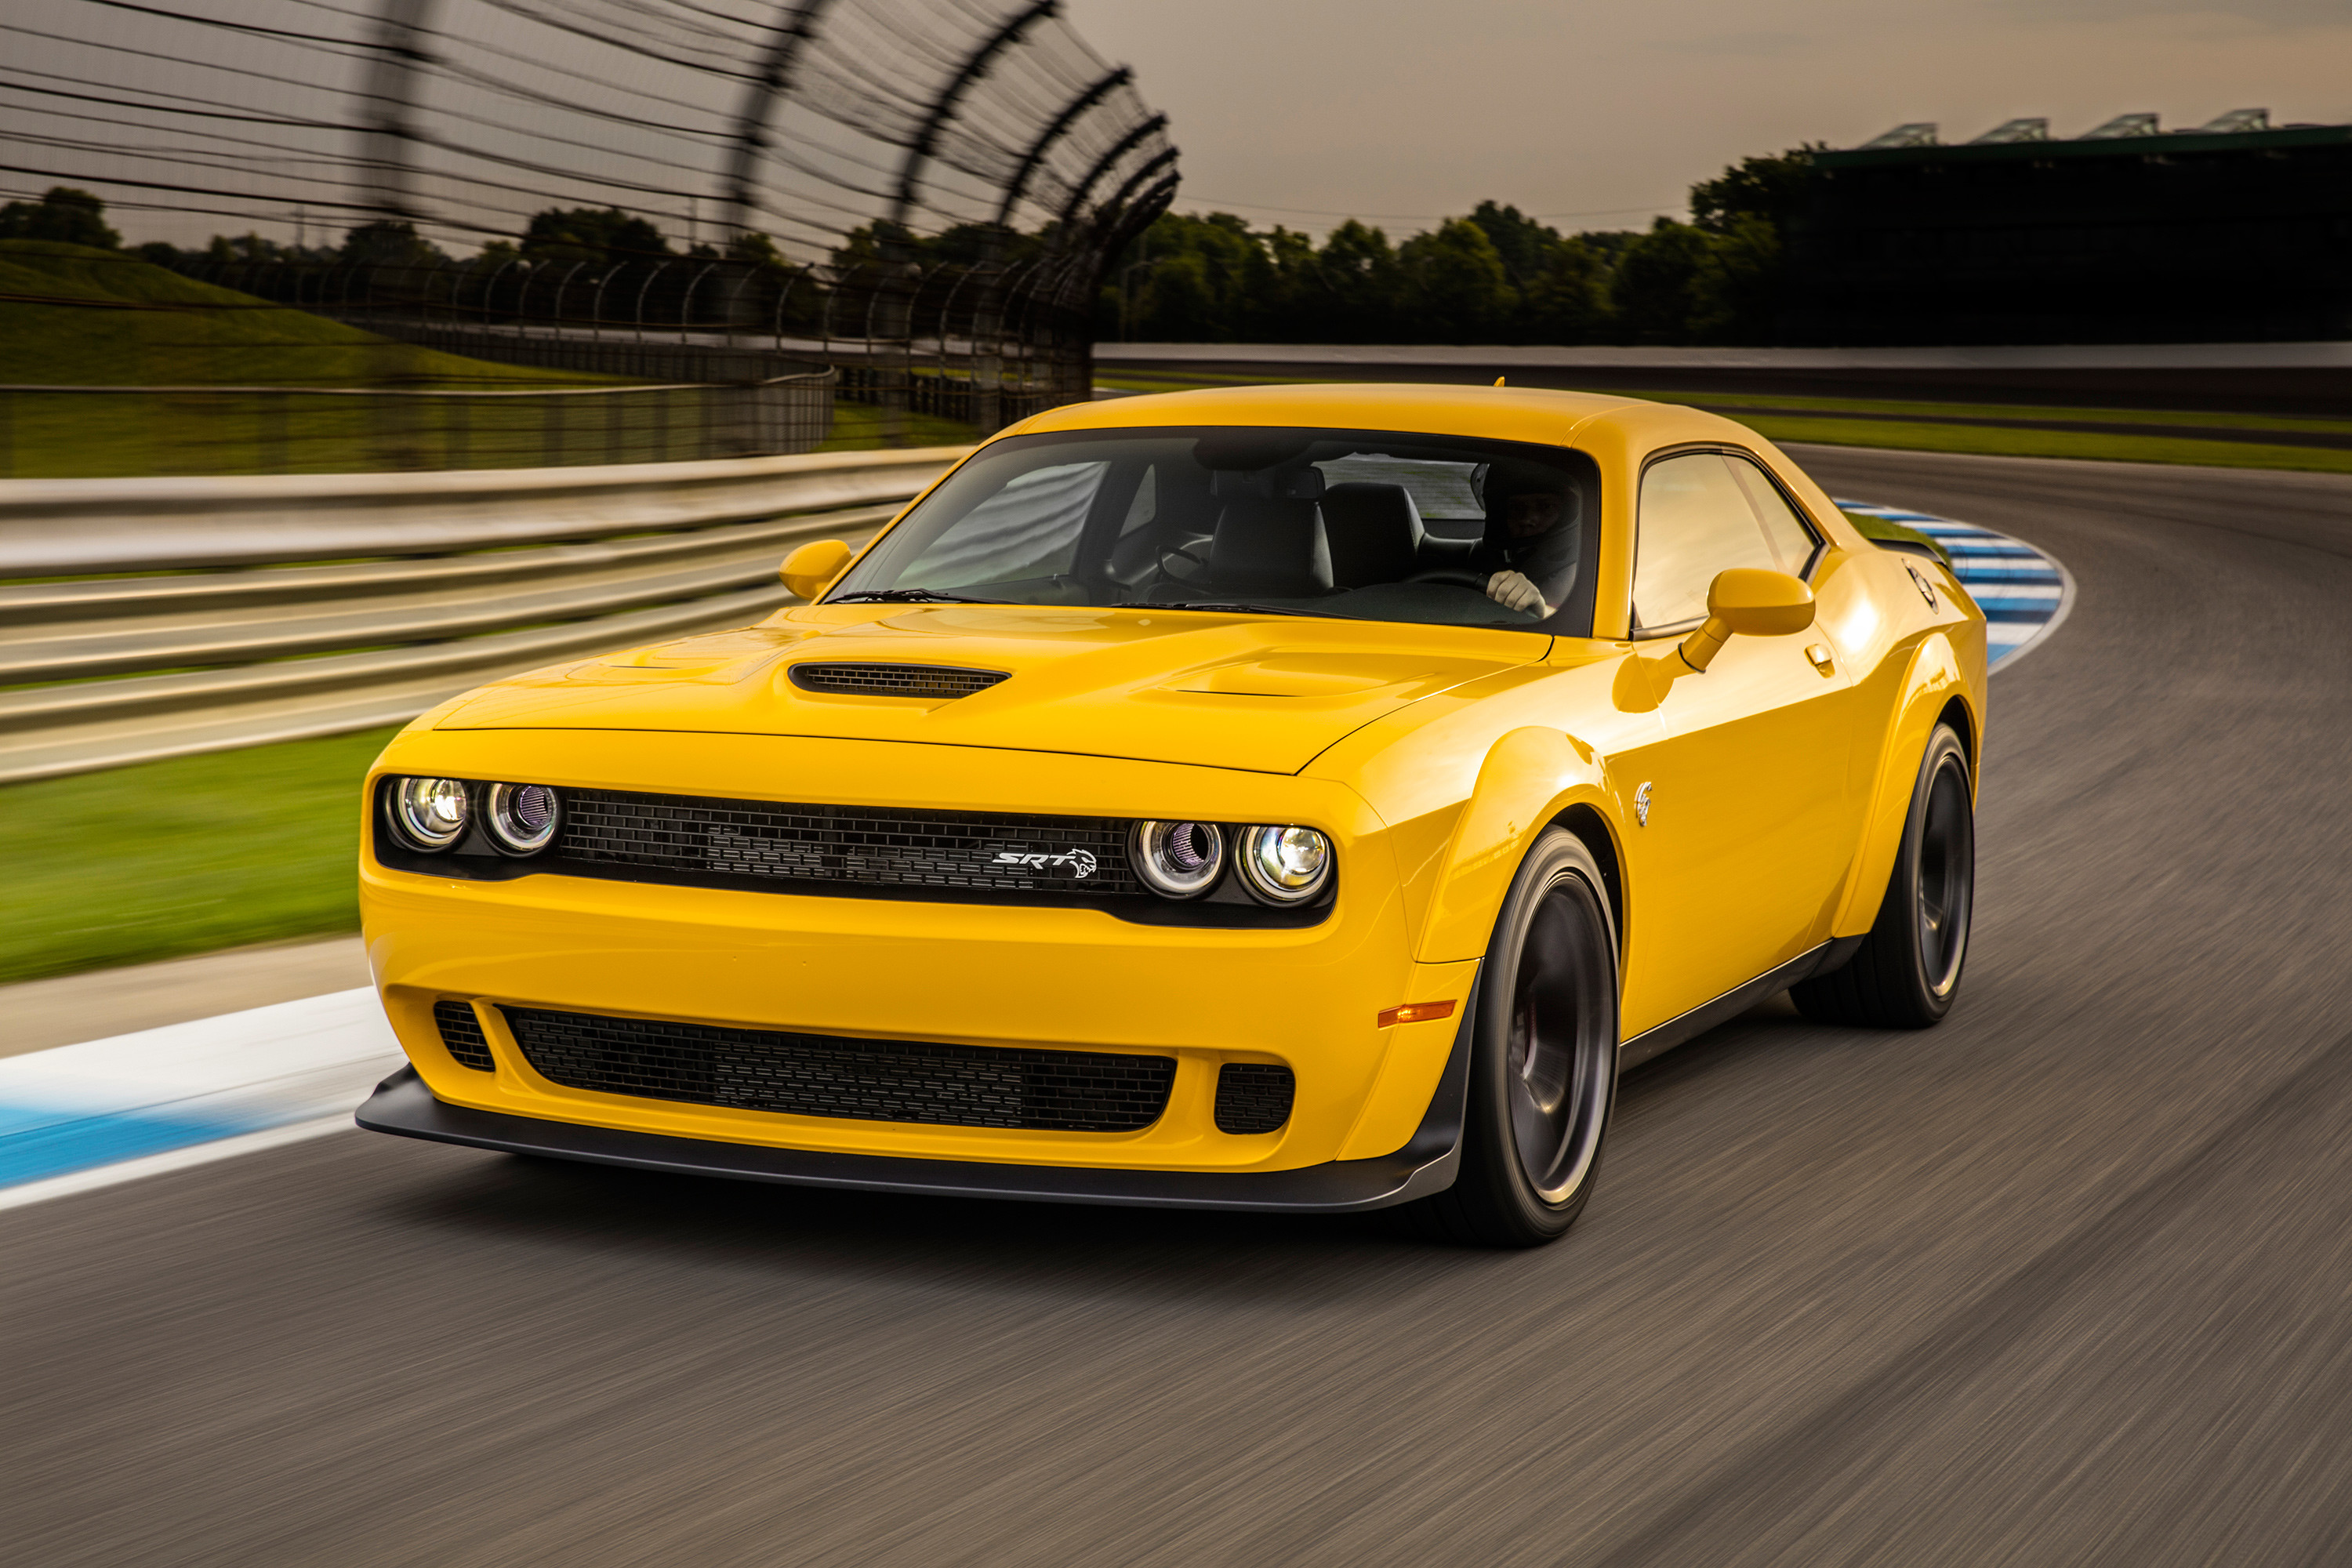 Res: 3000x2000, Dodge Challenger SRT Hellcat Widebody, Yellow, 2018, HD